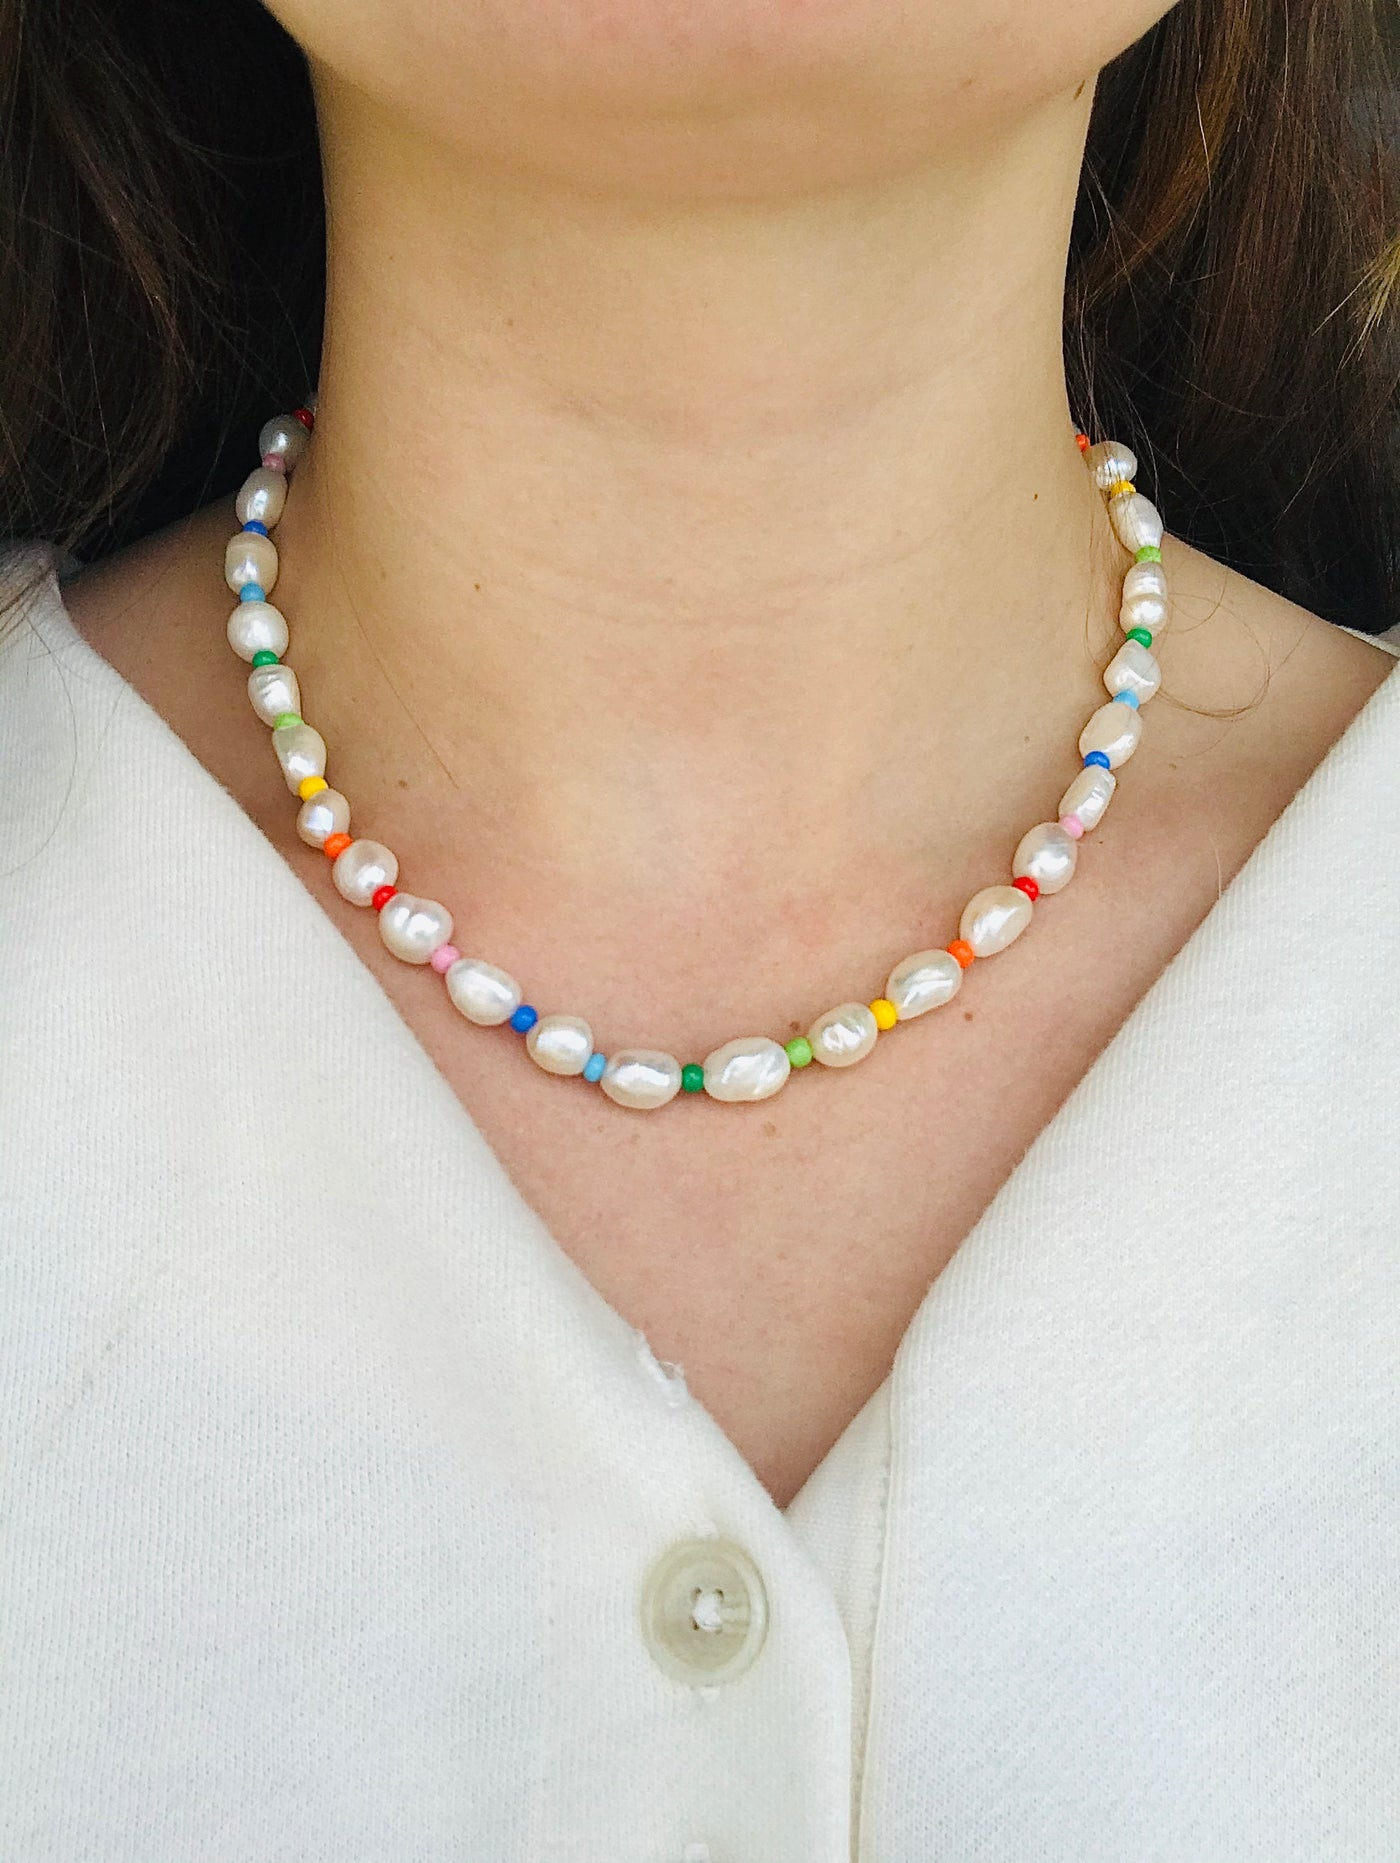 Rainbow pearl necklace by Uhm Studios available at Local Assembly